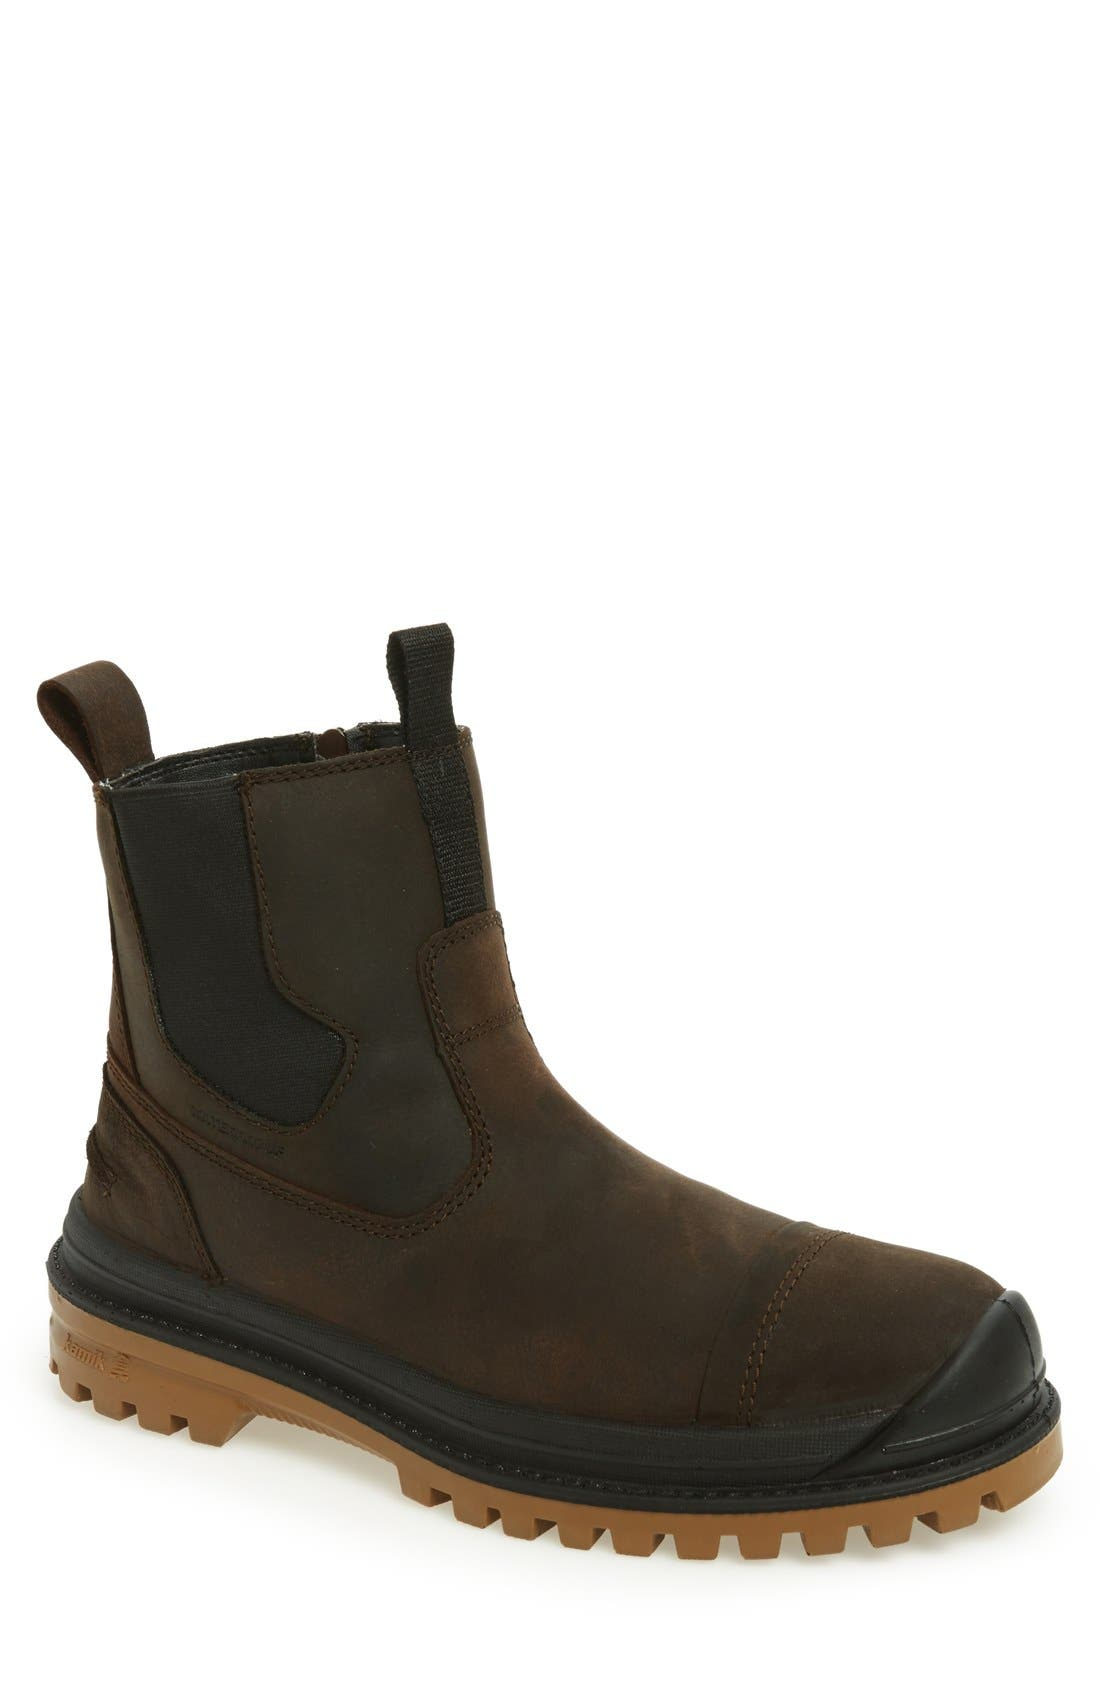 Griffon Snow Boot,                         Main,                         color, Dark Brown Leather